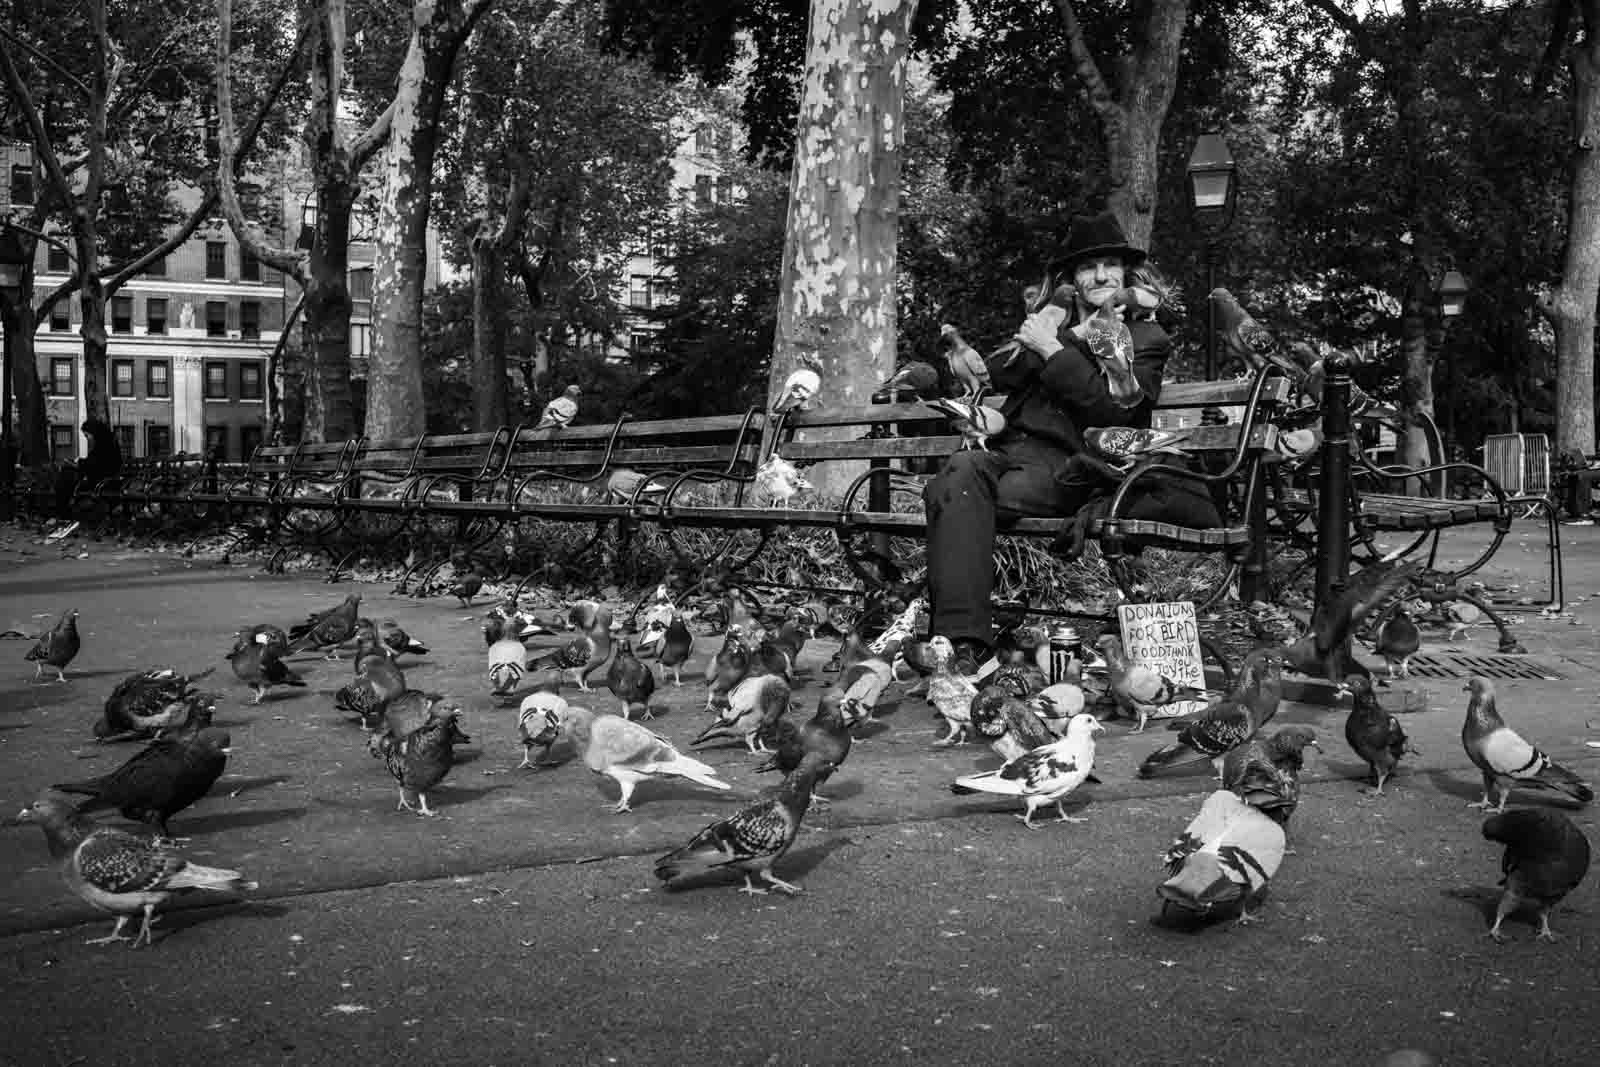 Man surrounded by pigeons in a street photo